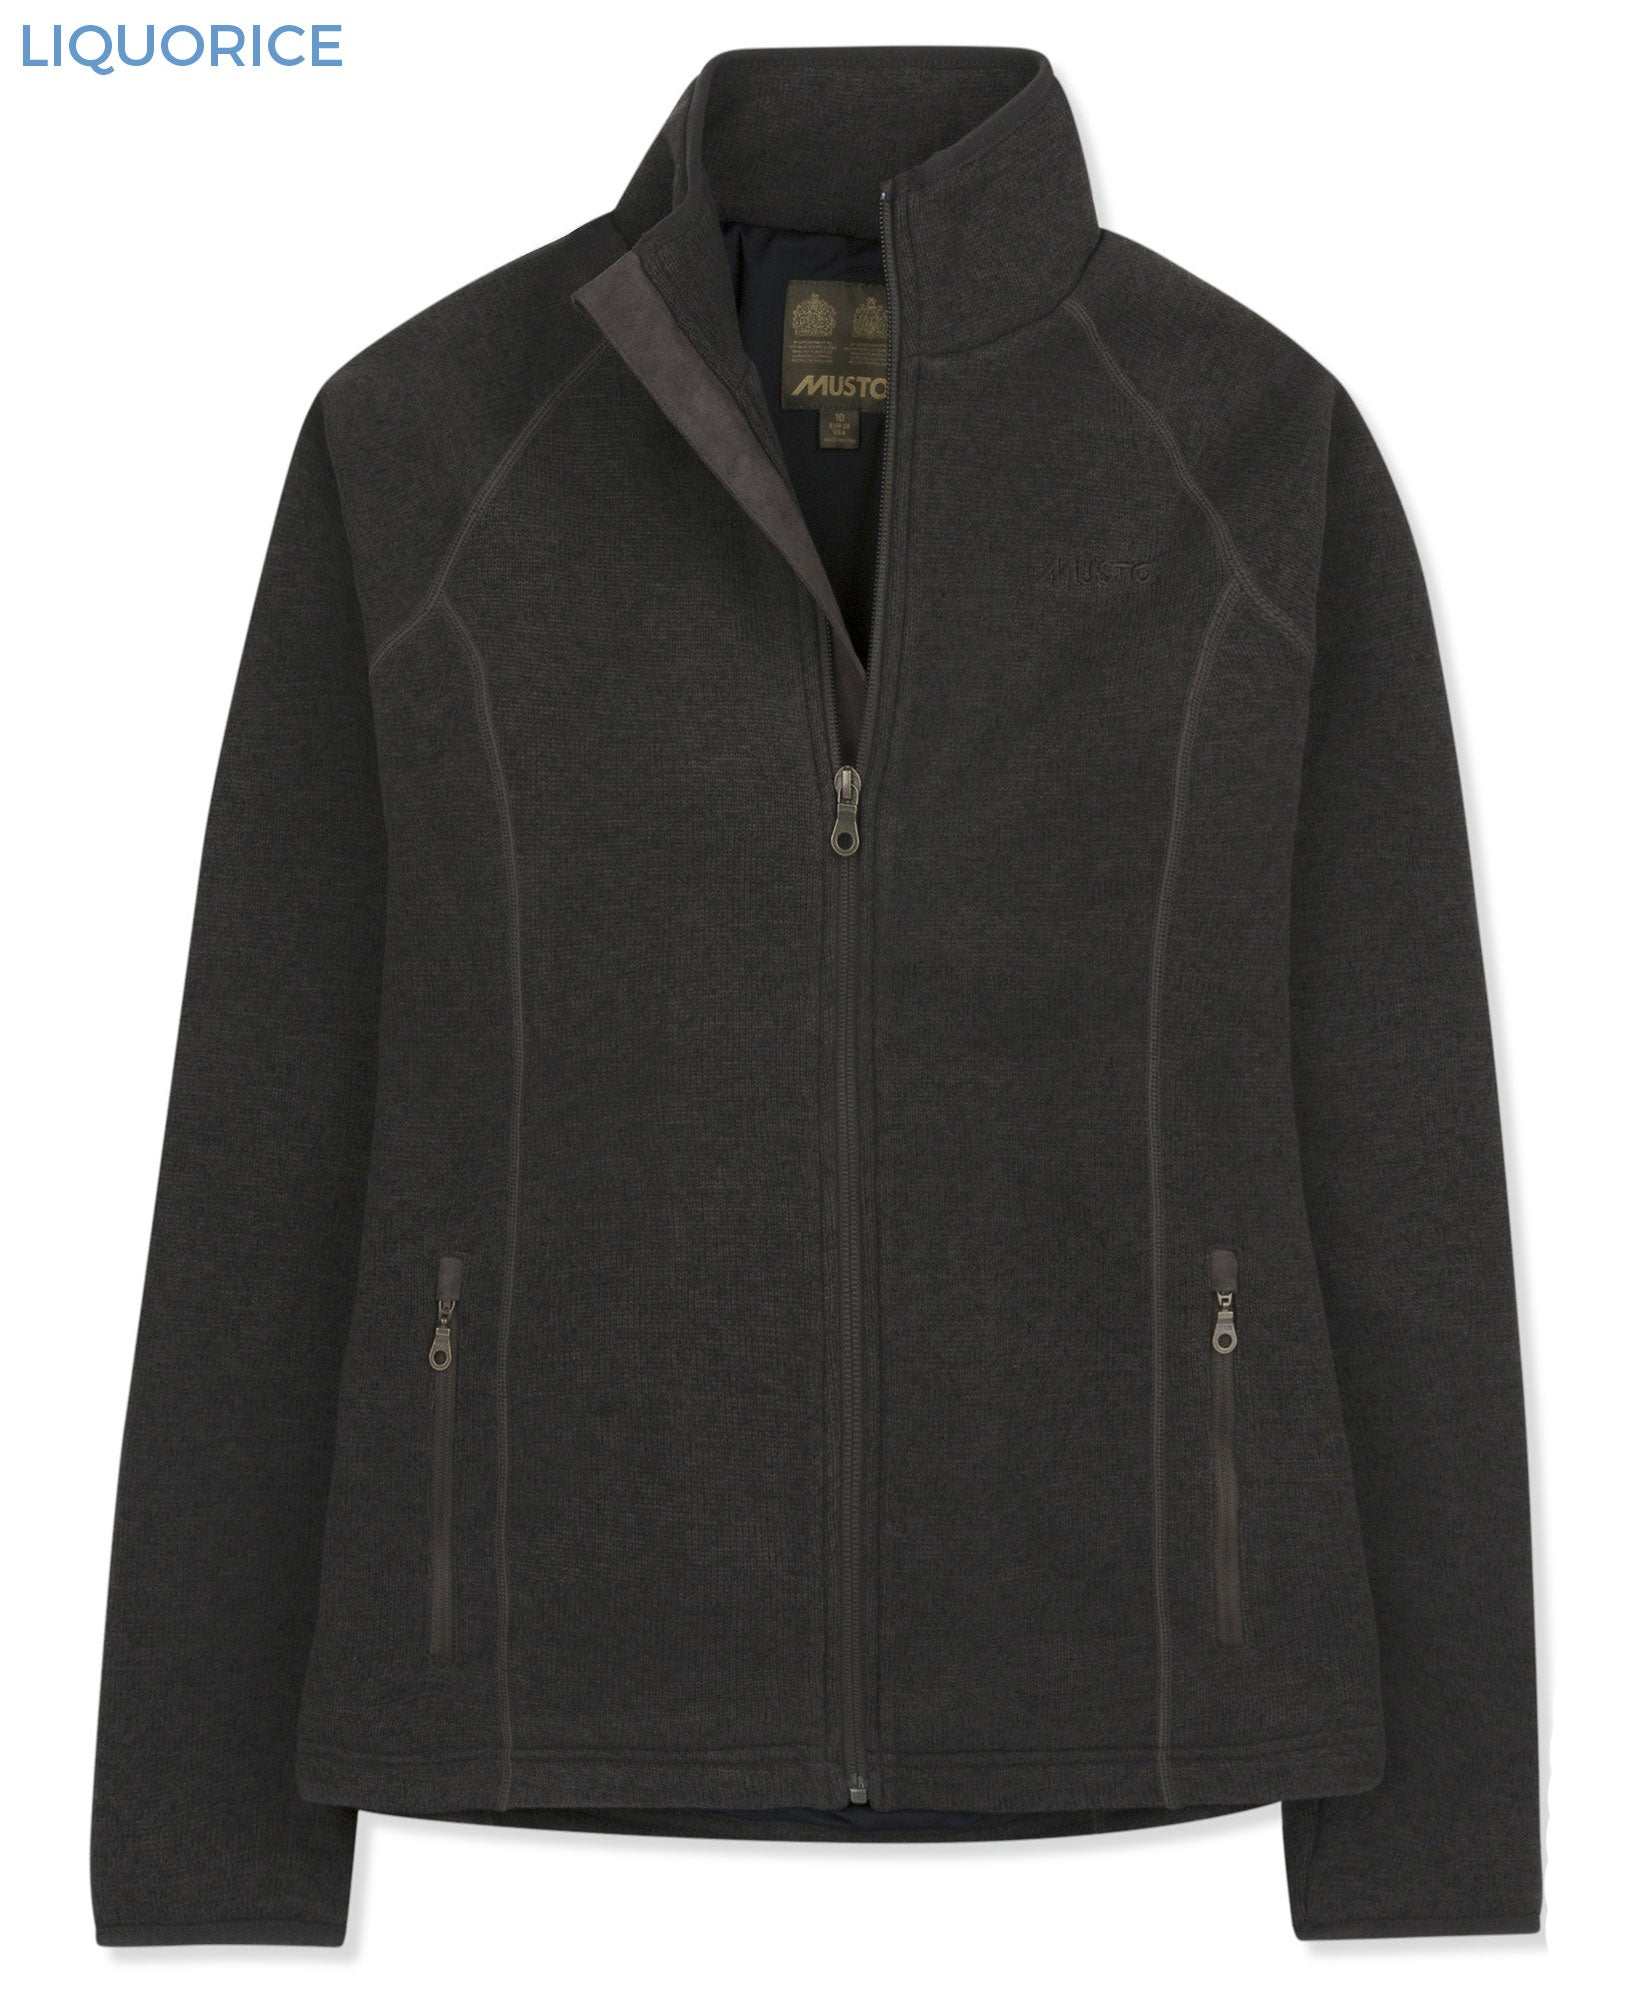 Liquorice Musto Ladies Polartec Windjammer Fleece Jacket